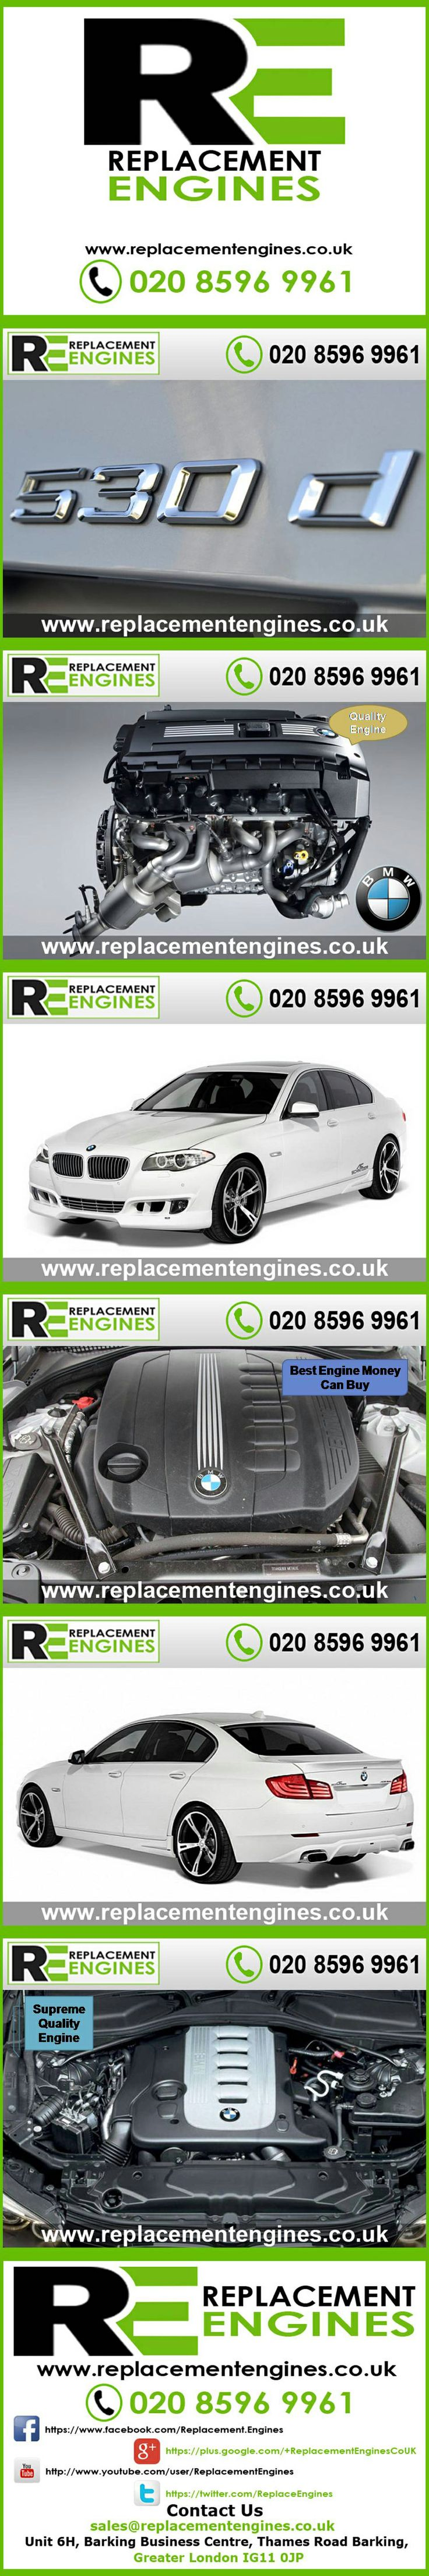 BMW 530d Engines for sale at the cheapest prices, we have low mileage used & reconditioned engines in stock now, ready to be delivered to anywhere in the UK or overseas, visit Replacement Engines website here.  http://www.replacementengines.co.uk/car-md.asp?part=all-bmw-530ddiesel-engine&mo_id=31174